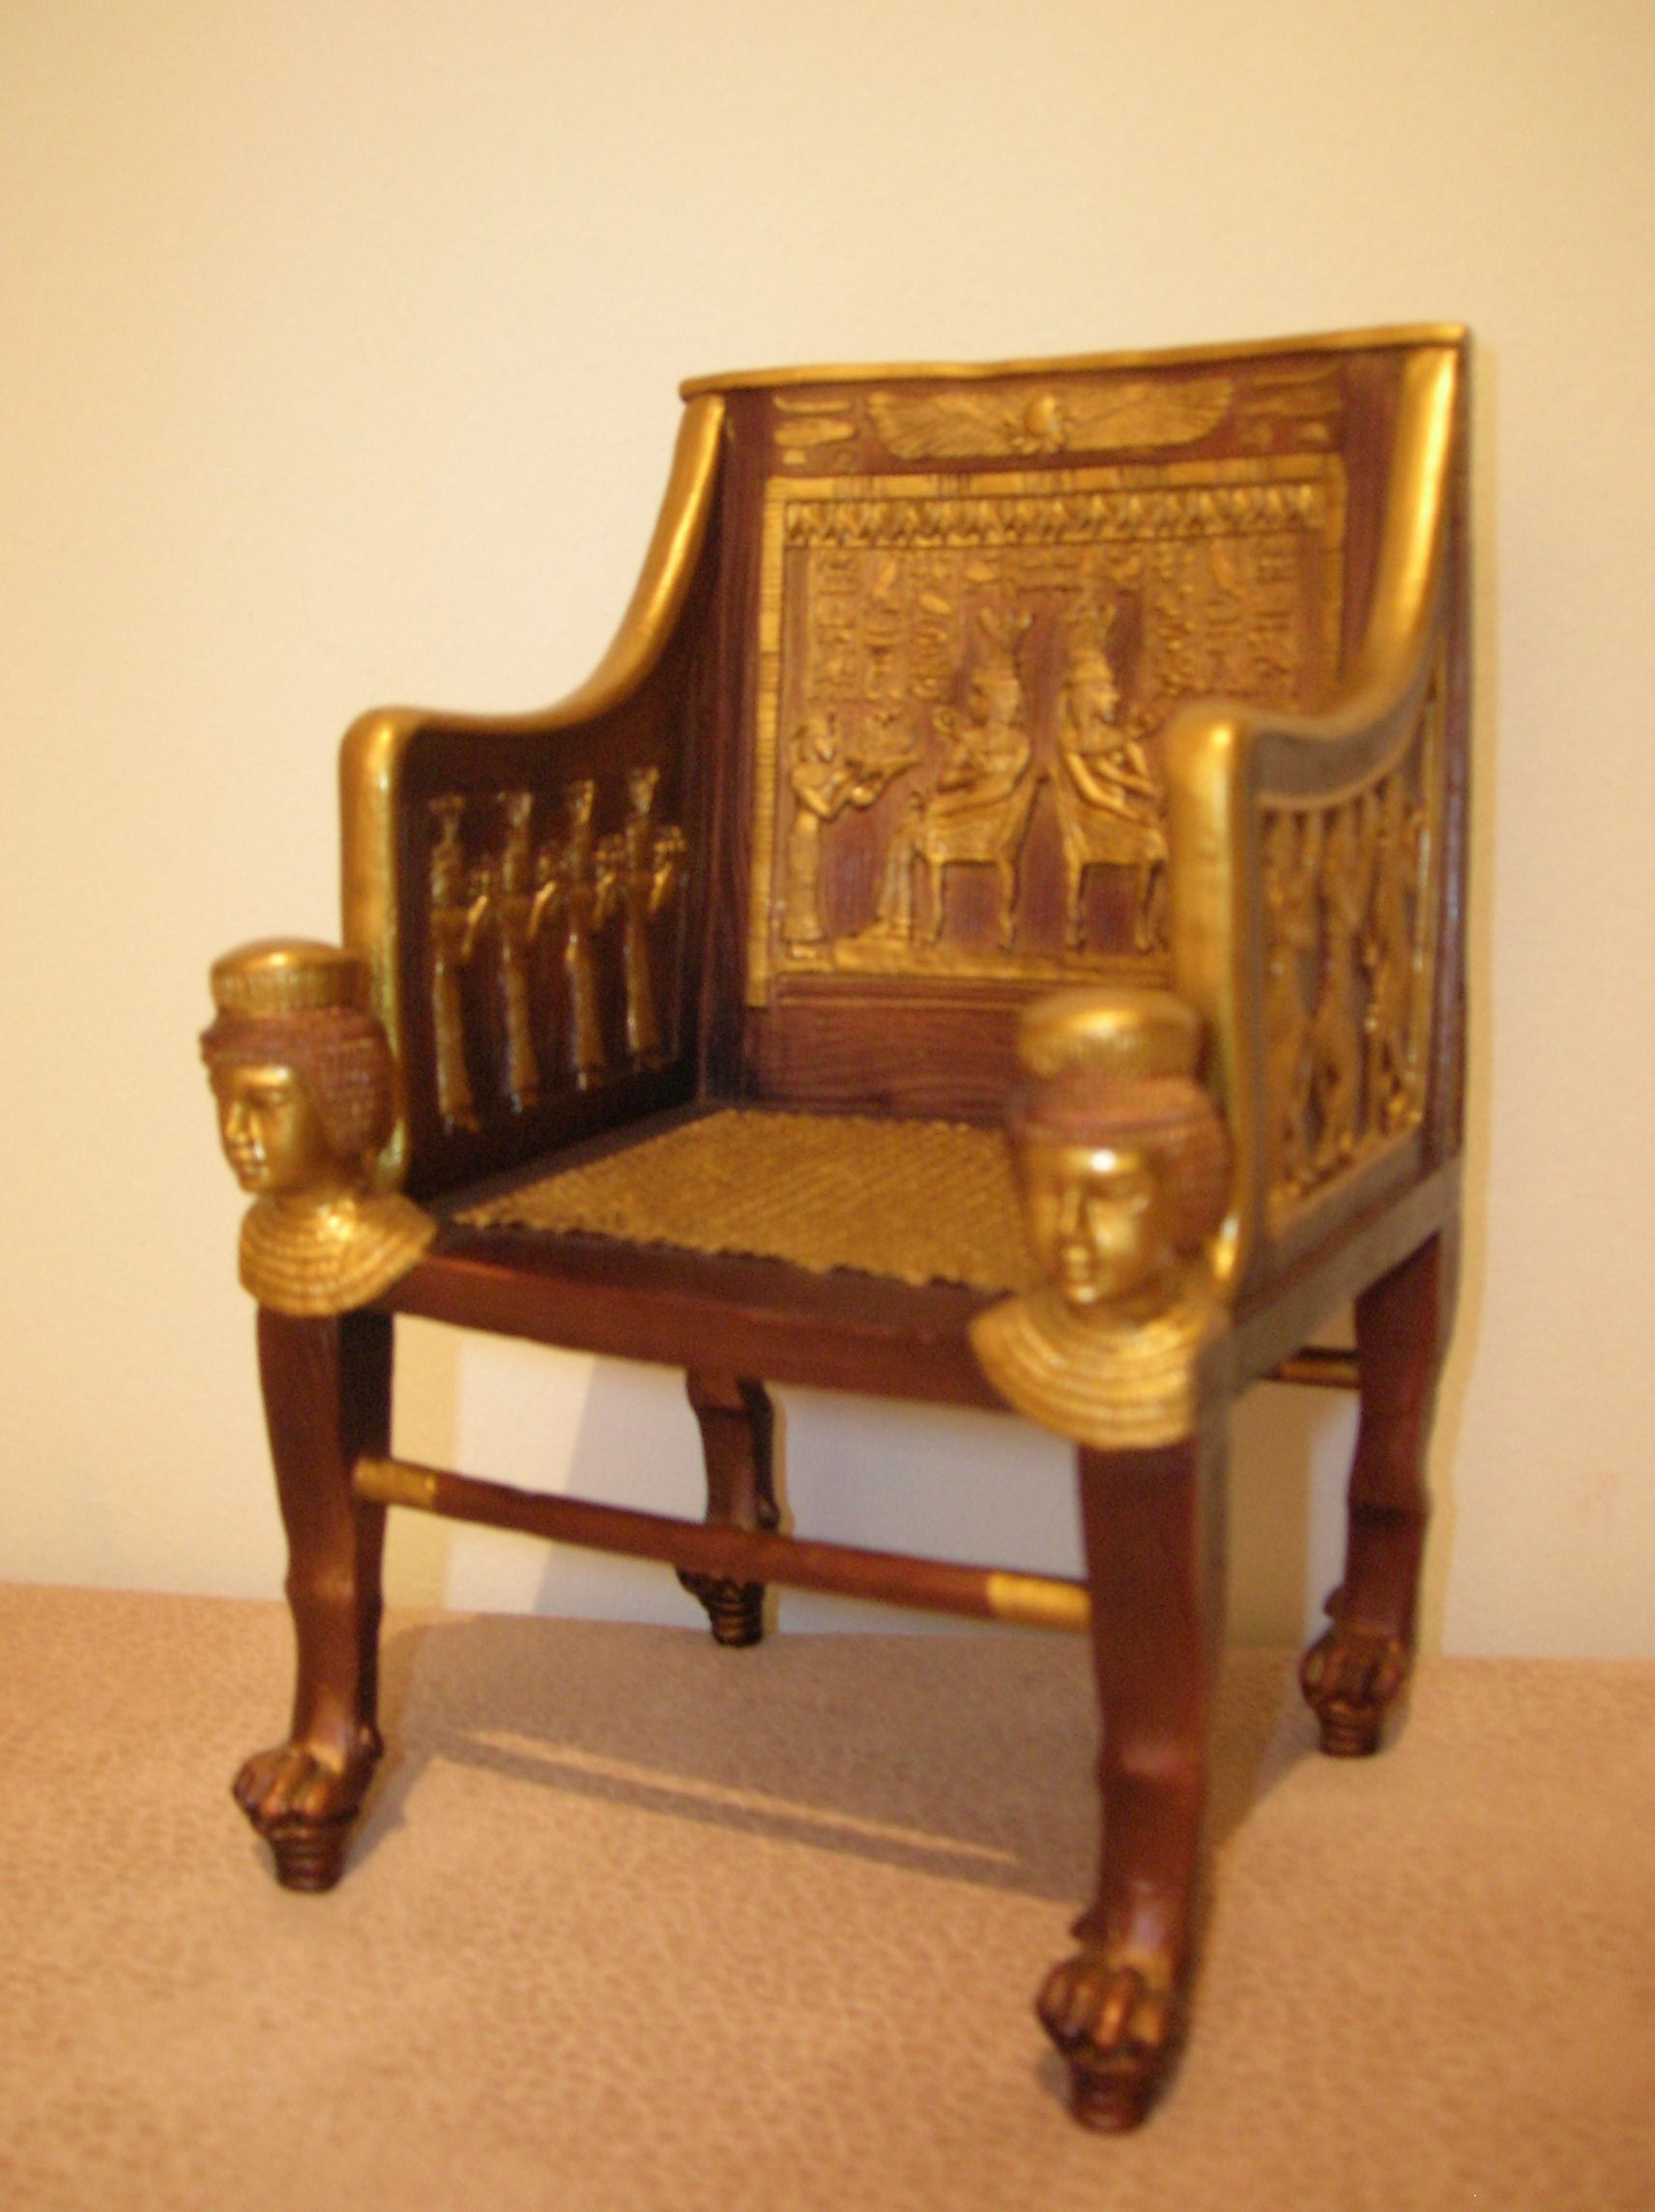 Ancient egyptian table - Princess Sitamun S Chair From Ancient Egyptian It Is Mad From Carved And Glided Wood